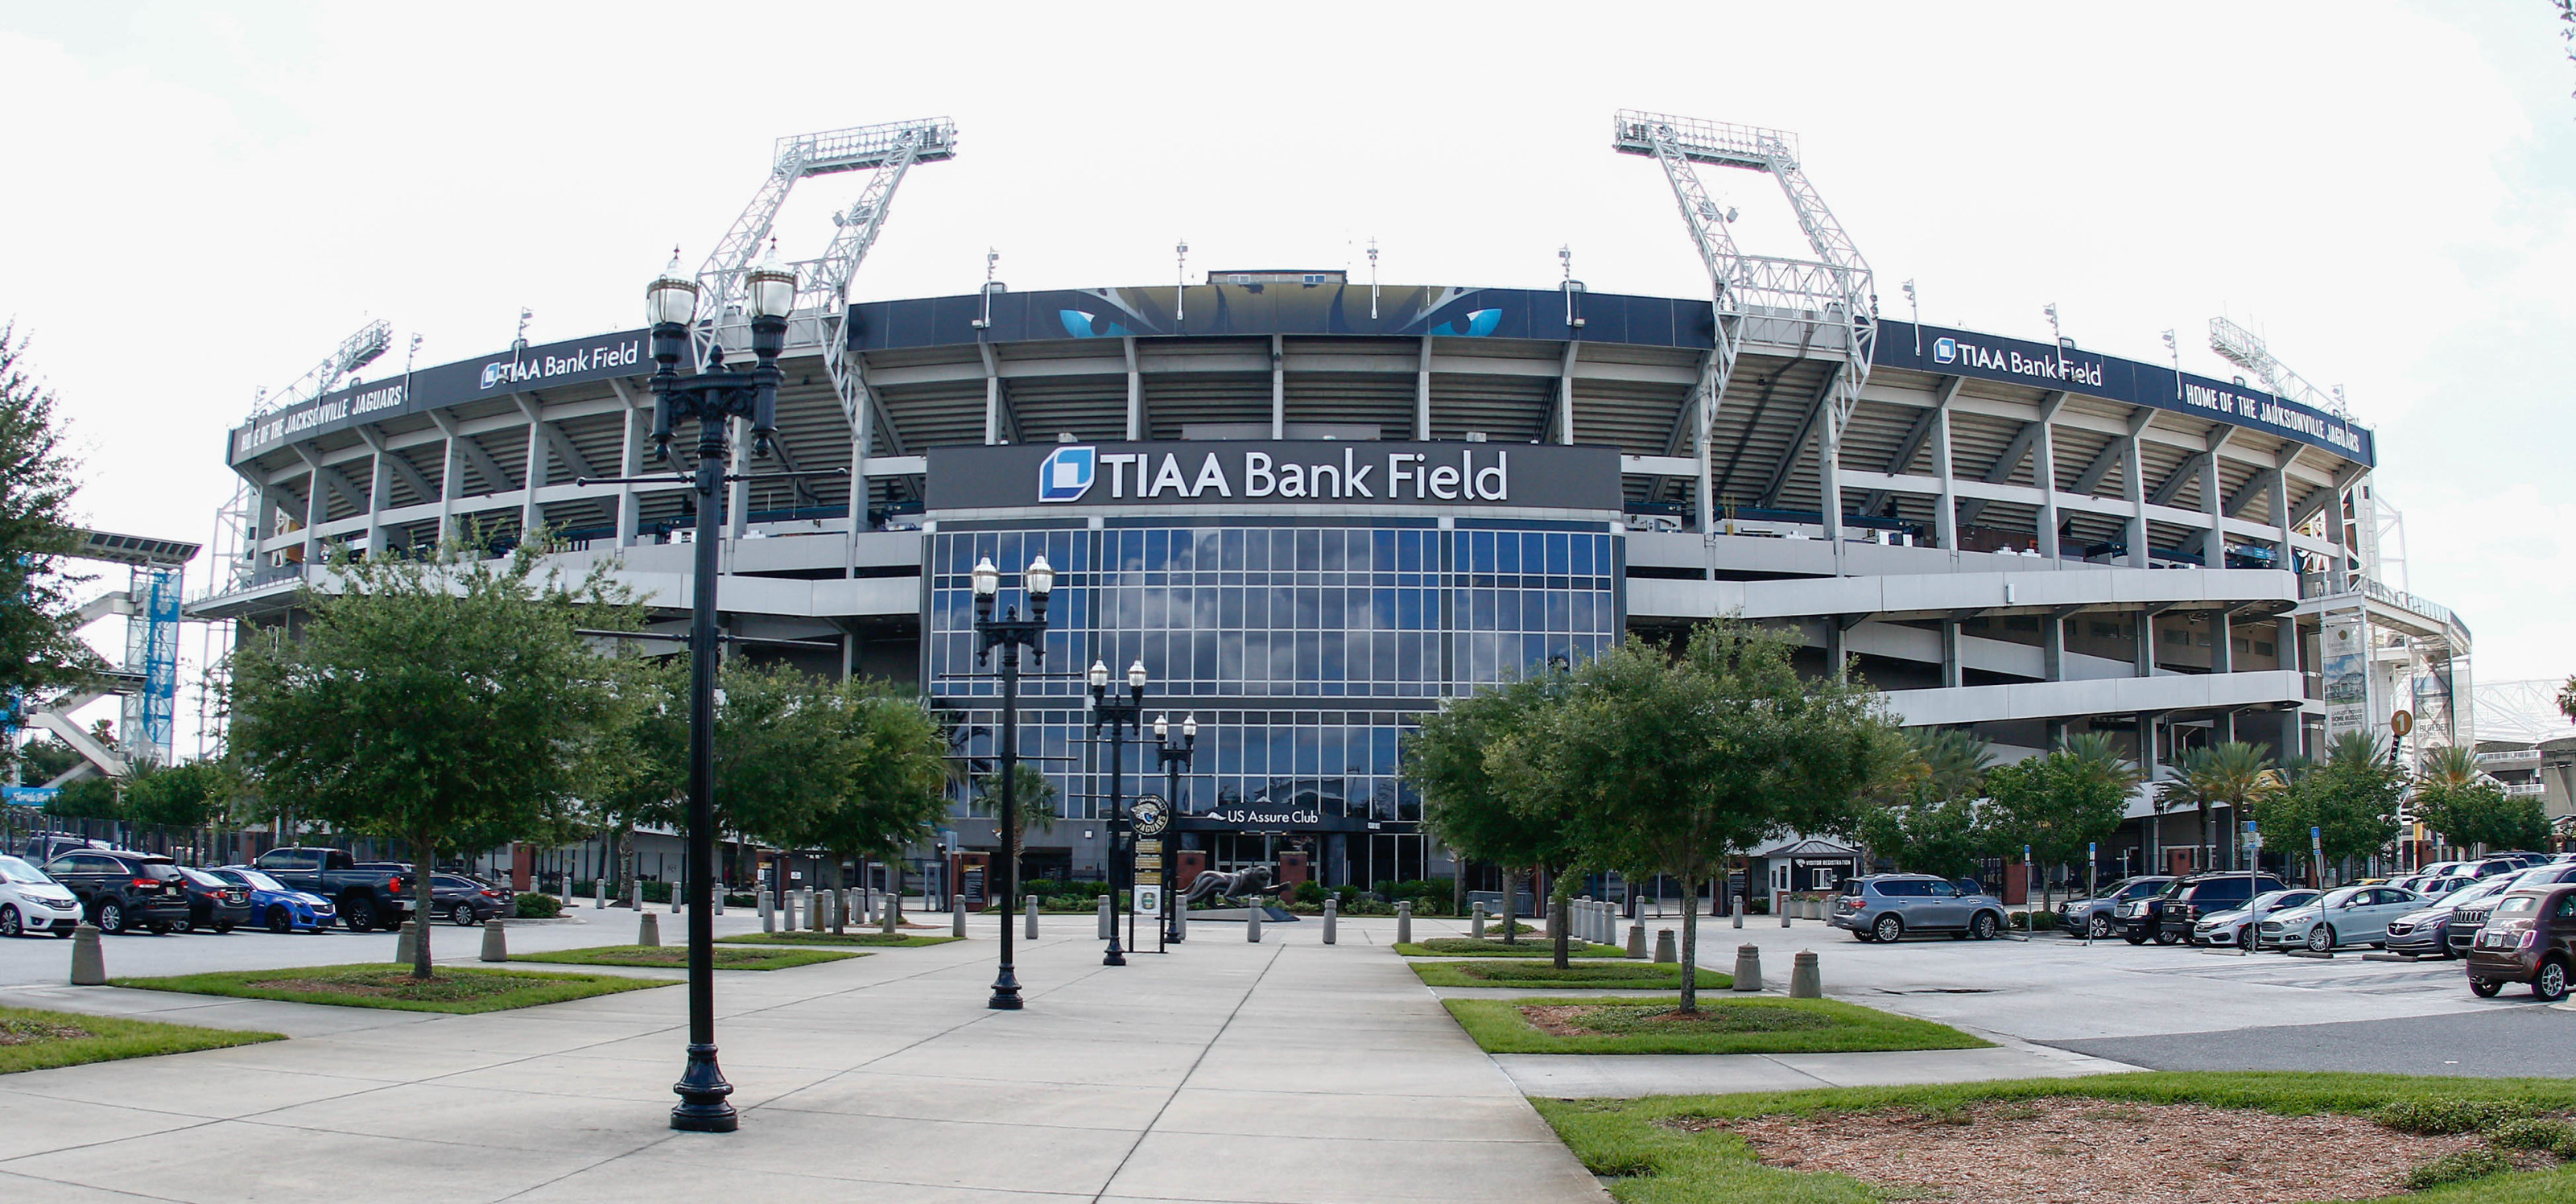 Jaguars team up with Honeywell to make TIAA Bank Field a safer space